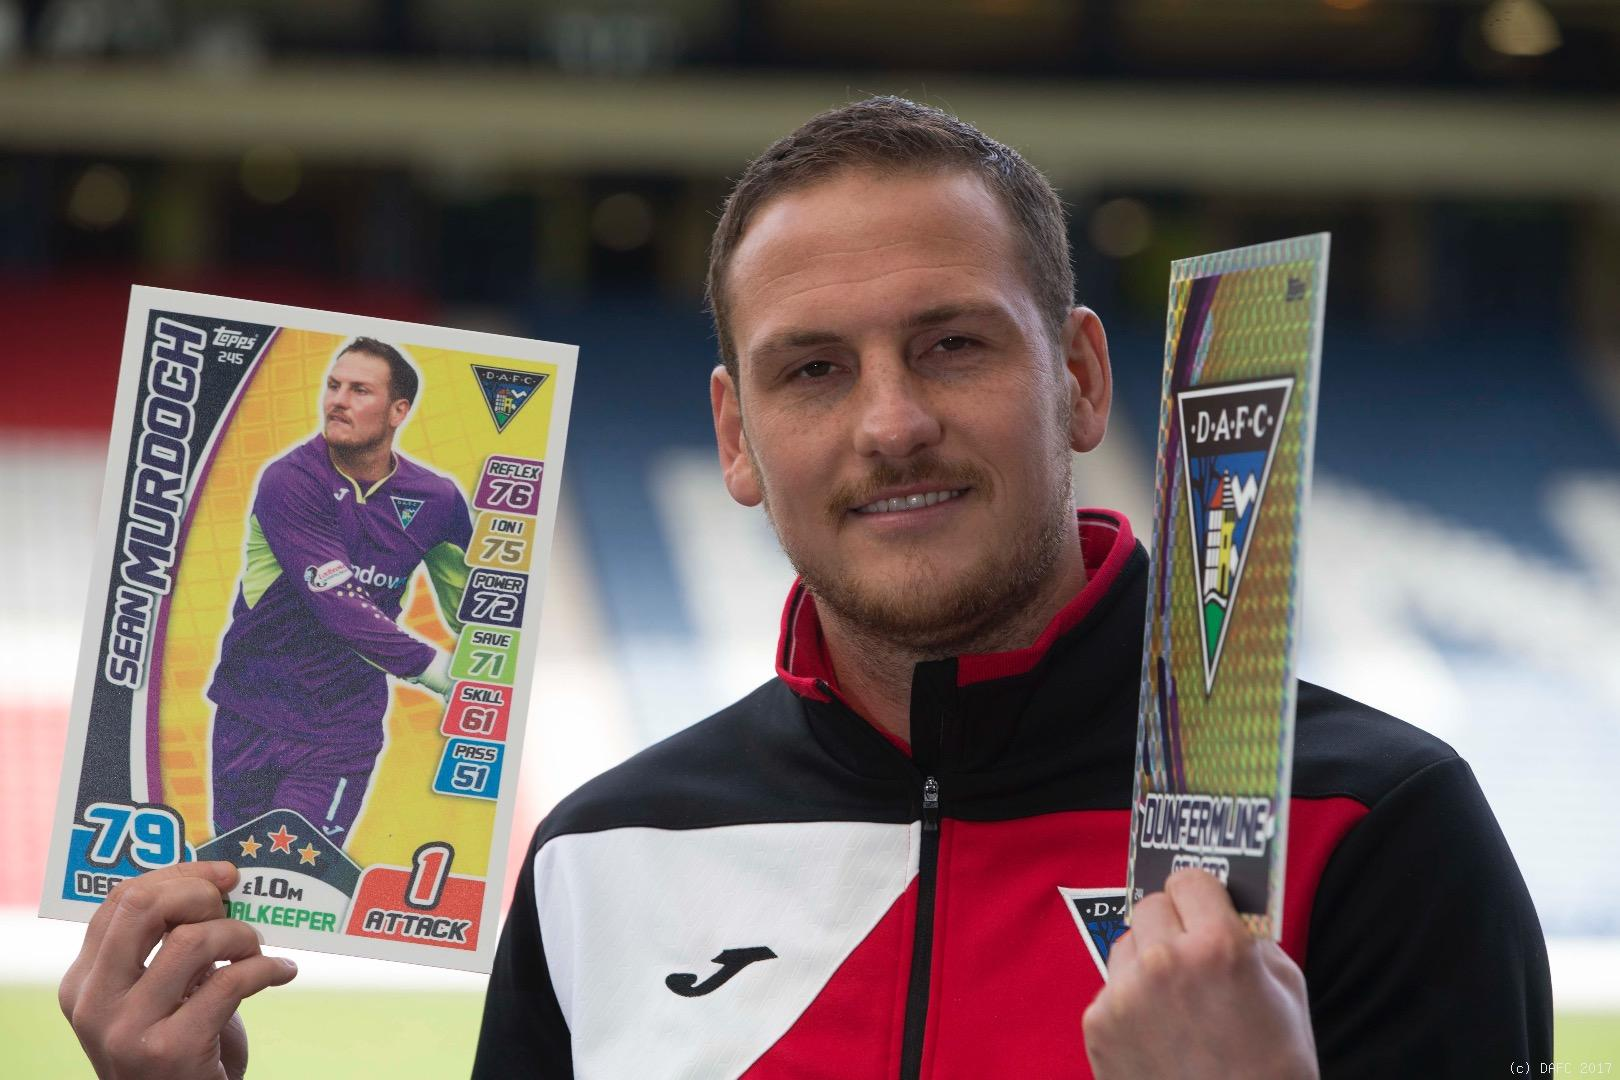 4f461764d95 Available now, Topps Match Attax, the world's most successful football trading  card game, offers fans of all ages a fun-filled addition to the new SPFL ...